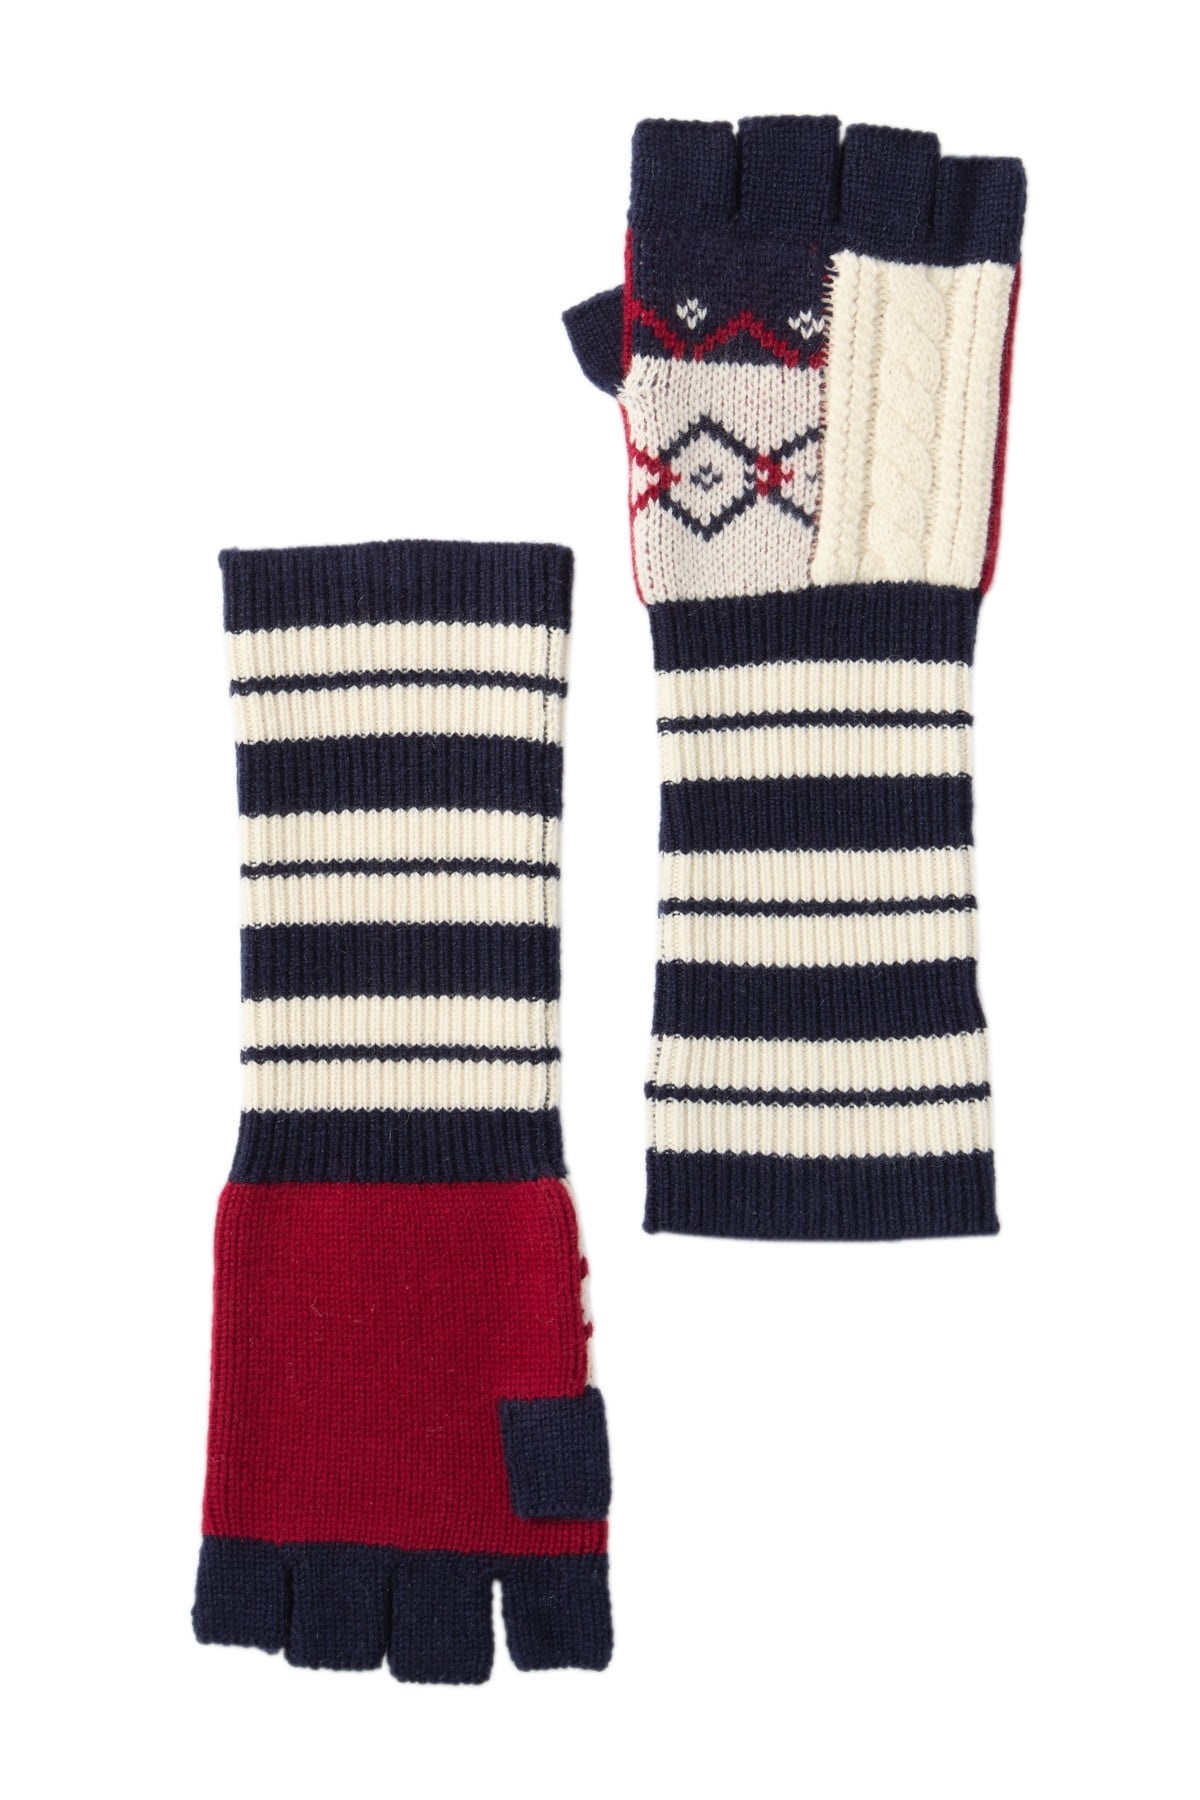 Burberry Cable Knit Fingerless Gloves In Multi